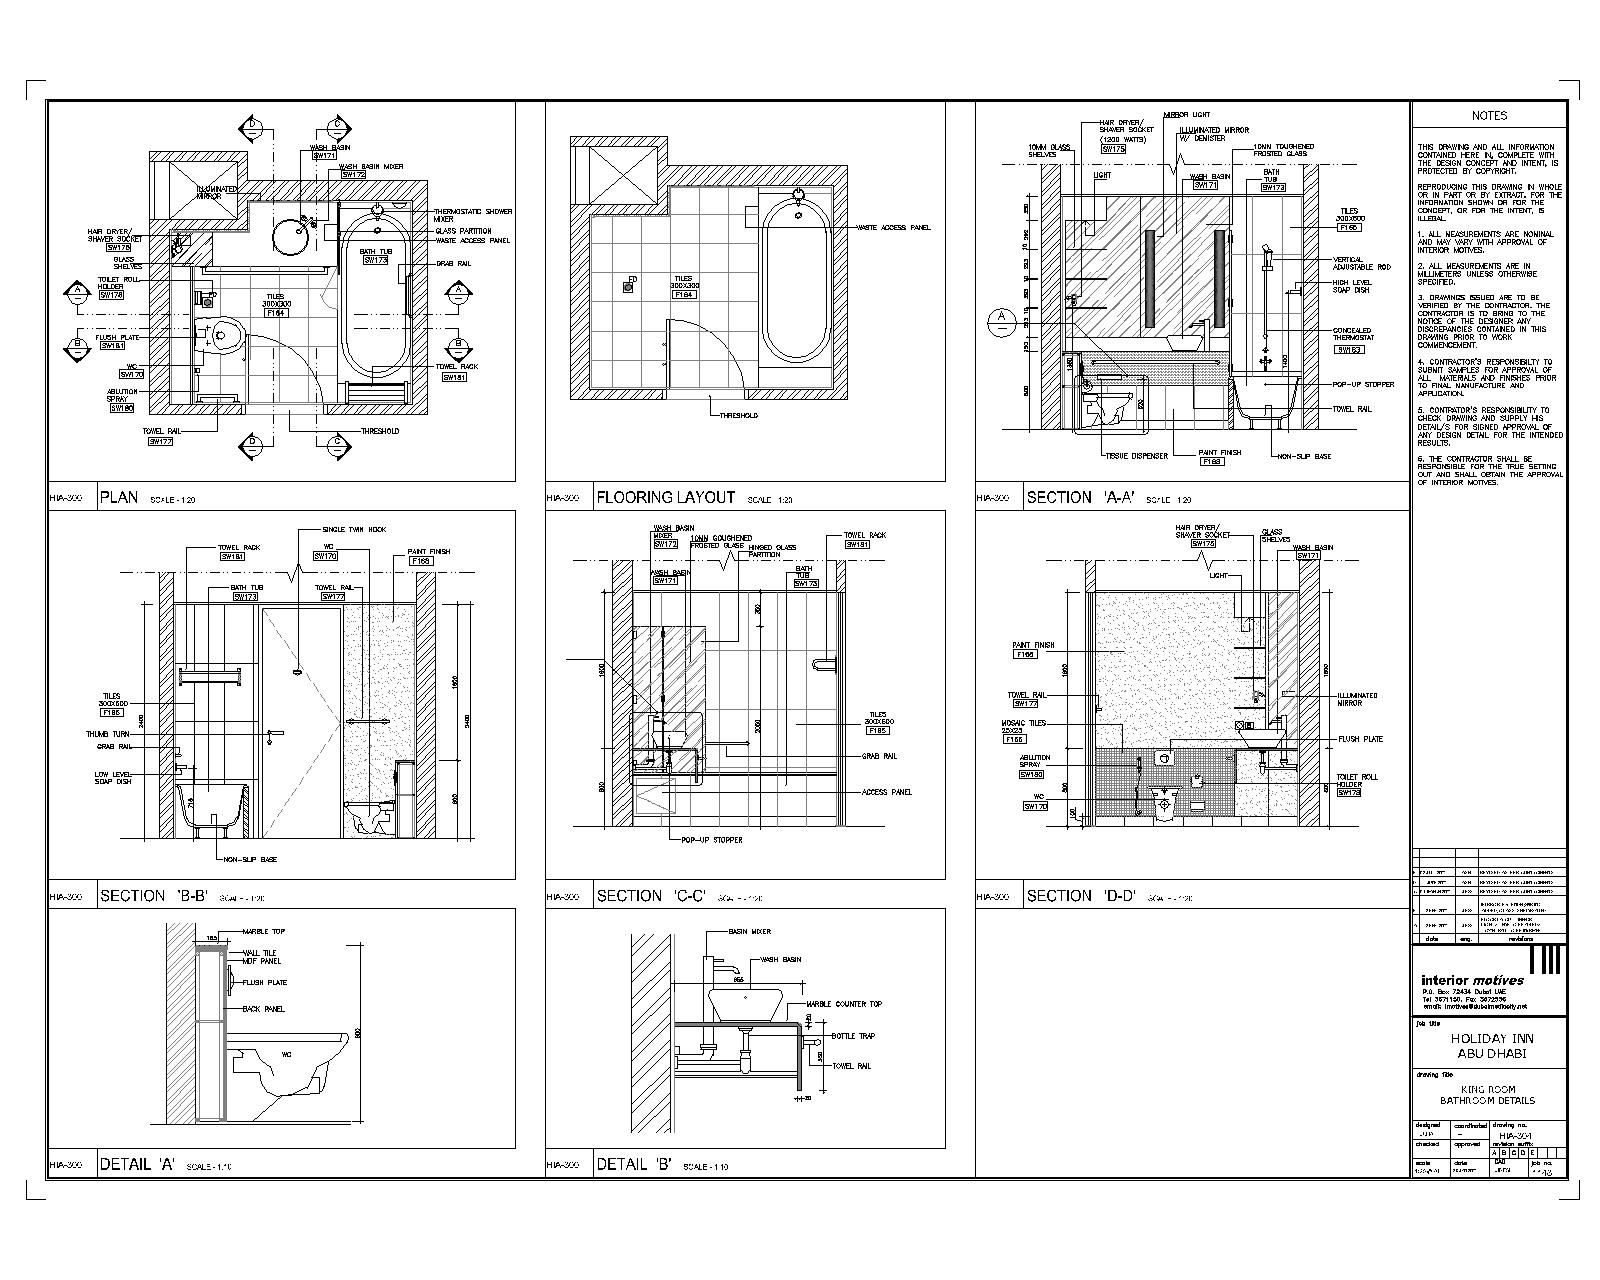 Autocad drawings detail by ashik ahammed at coroflot for Interior design cad free